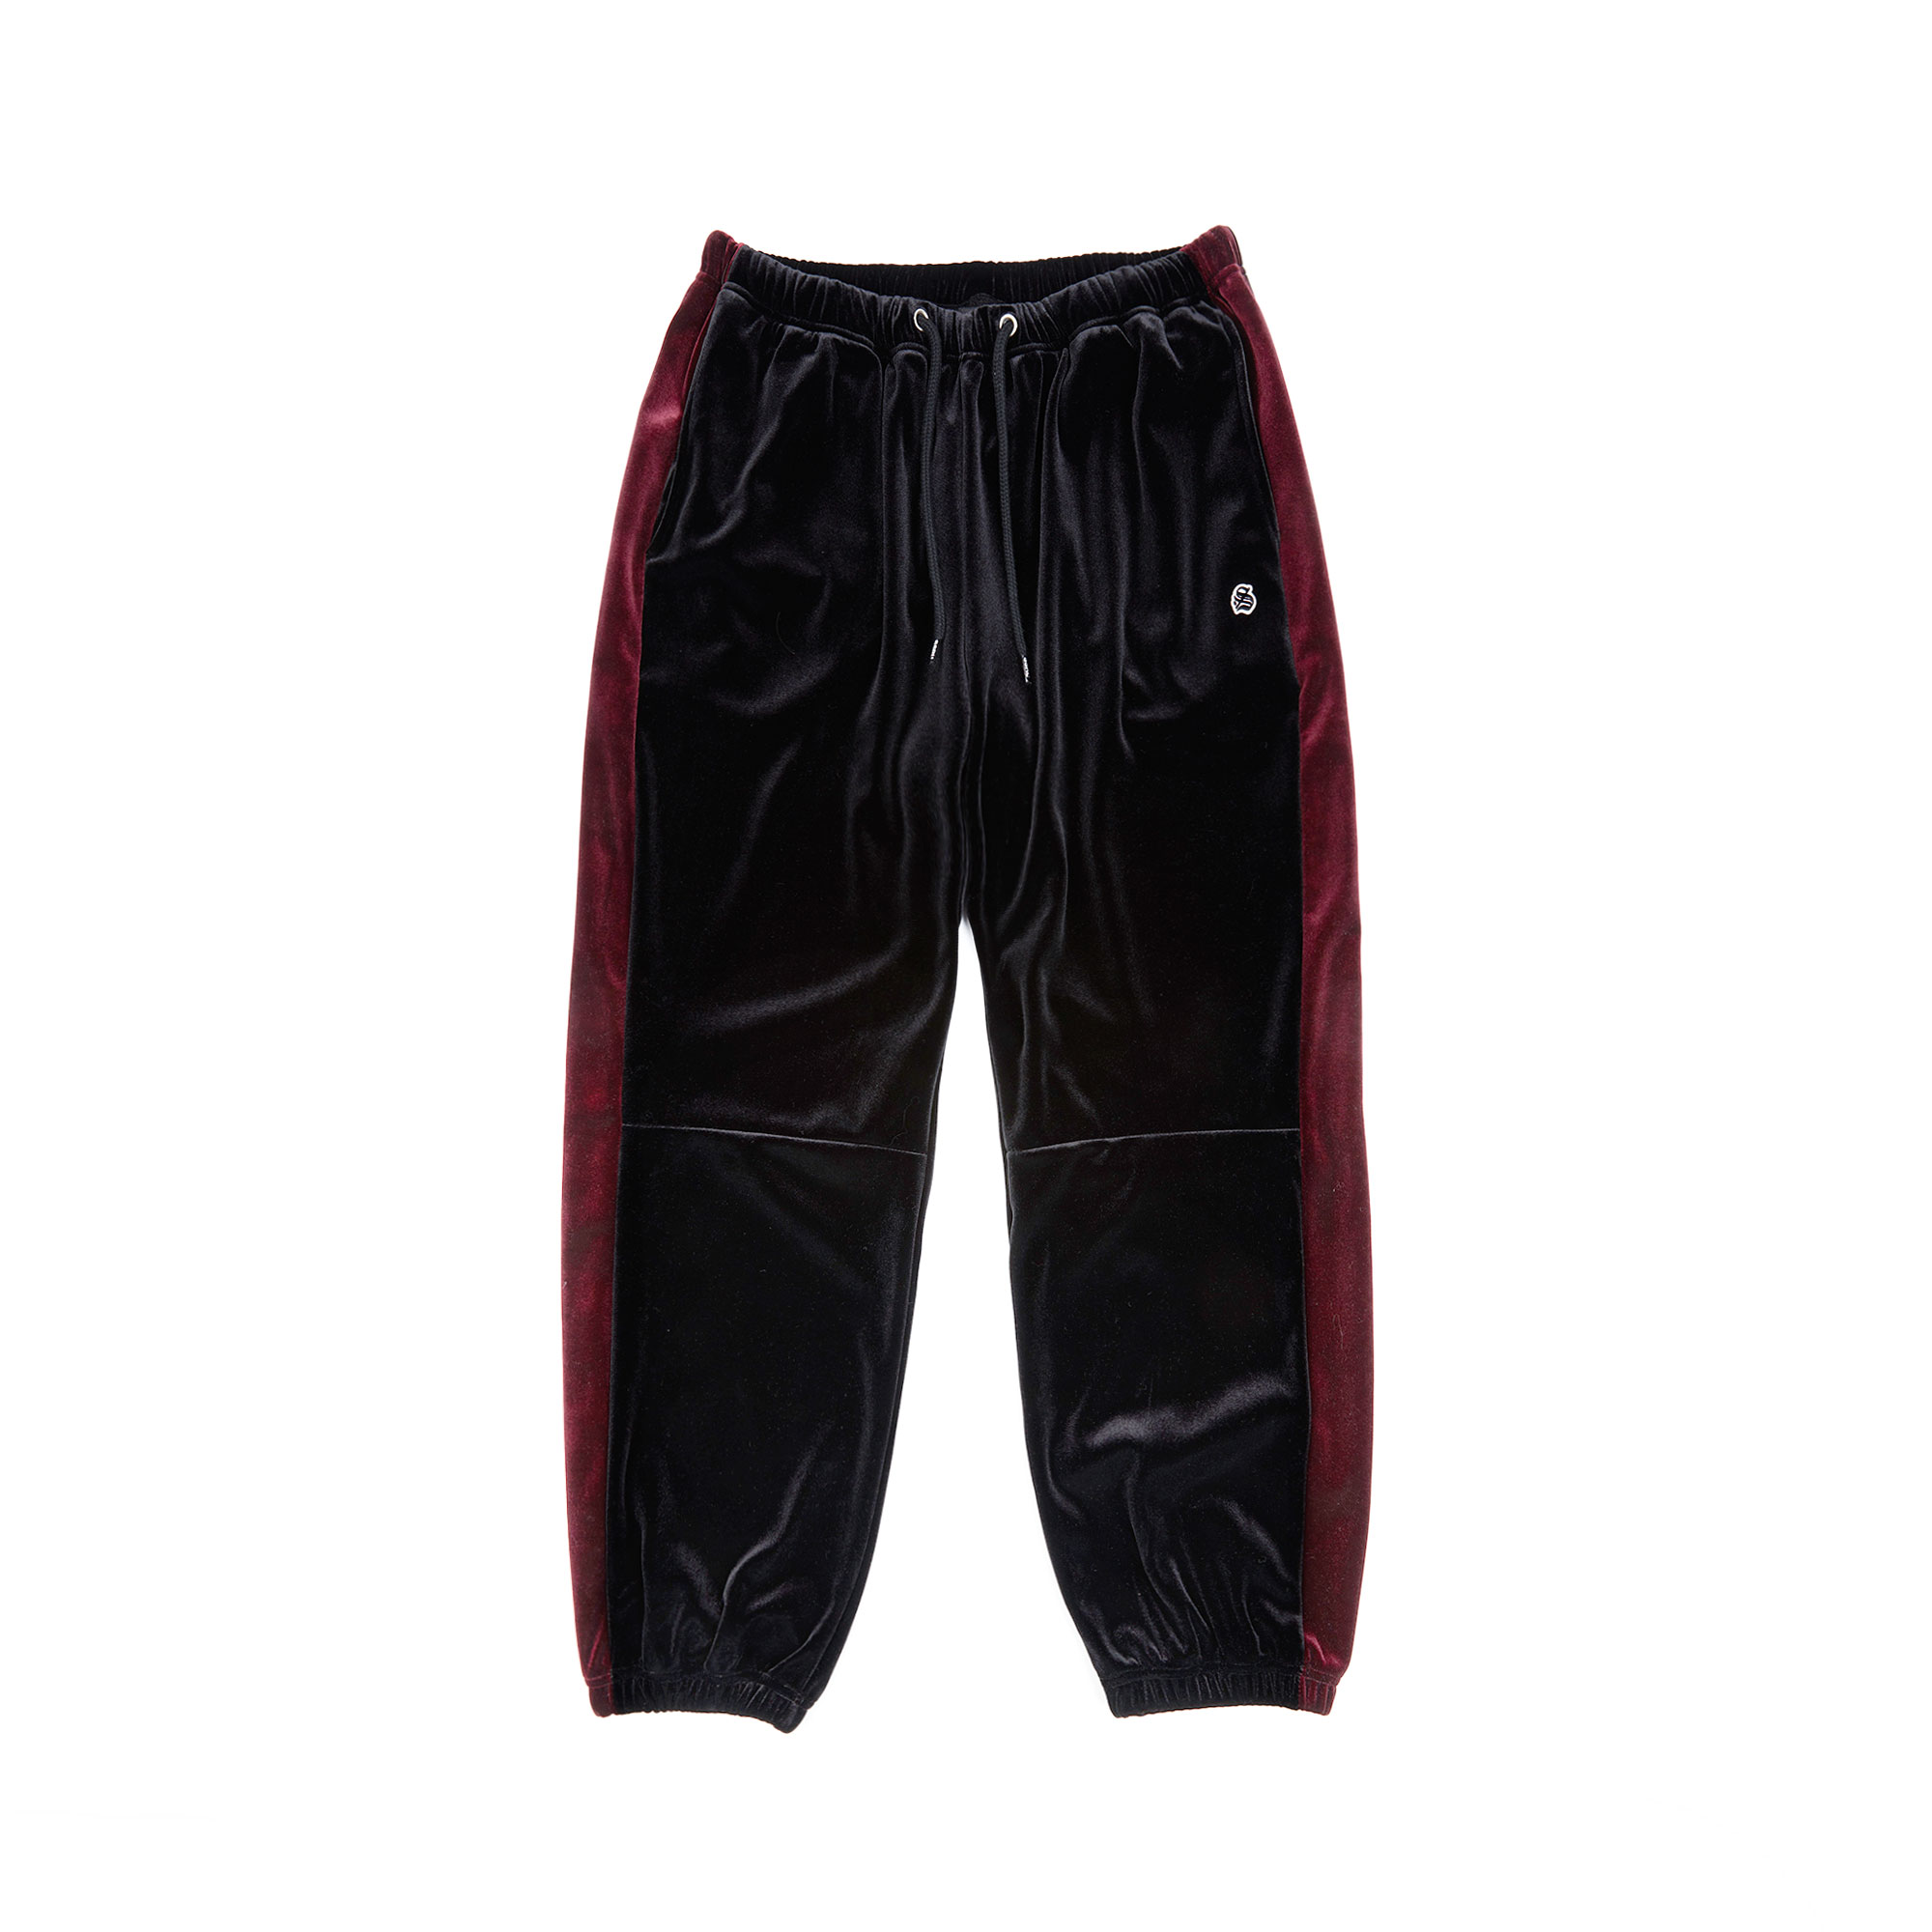 velour pants / black